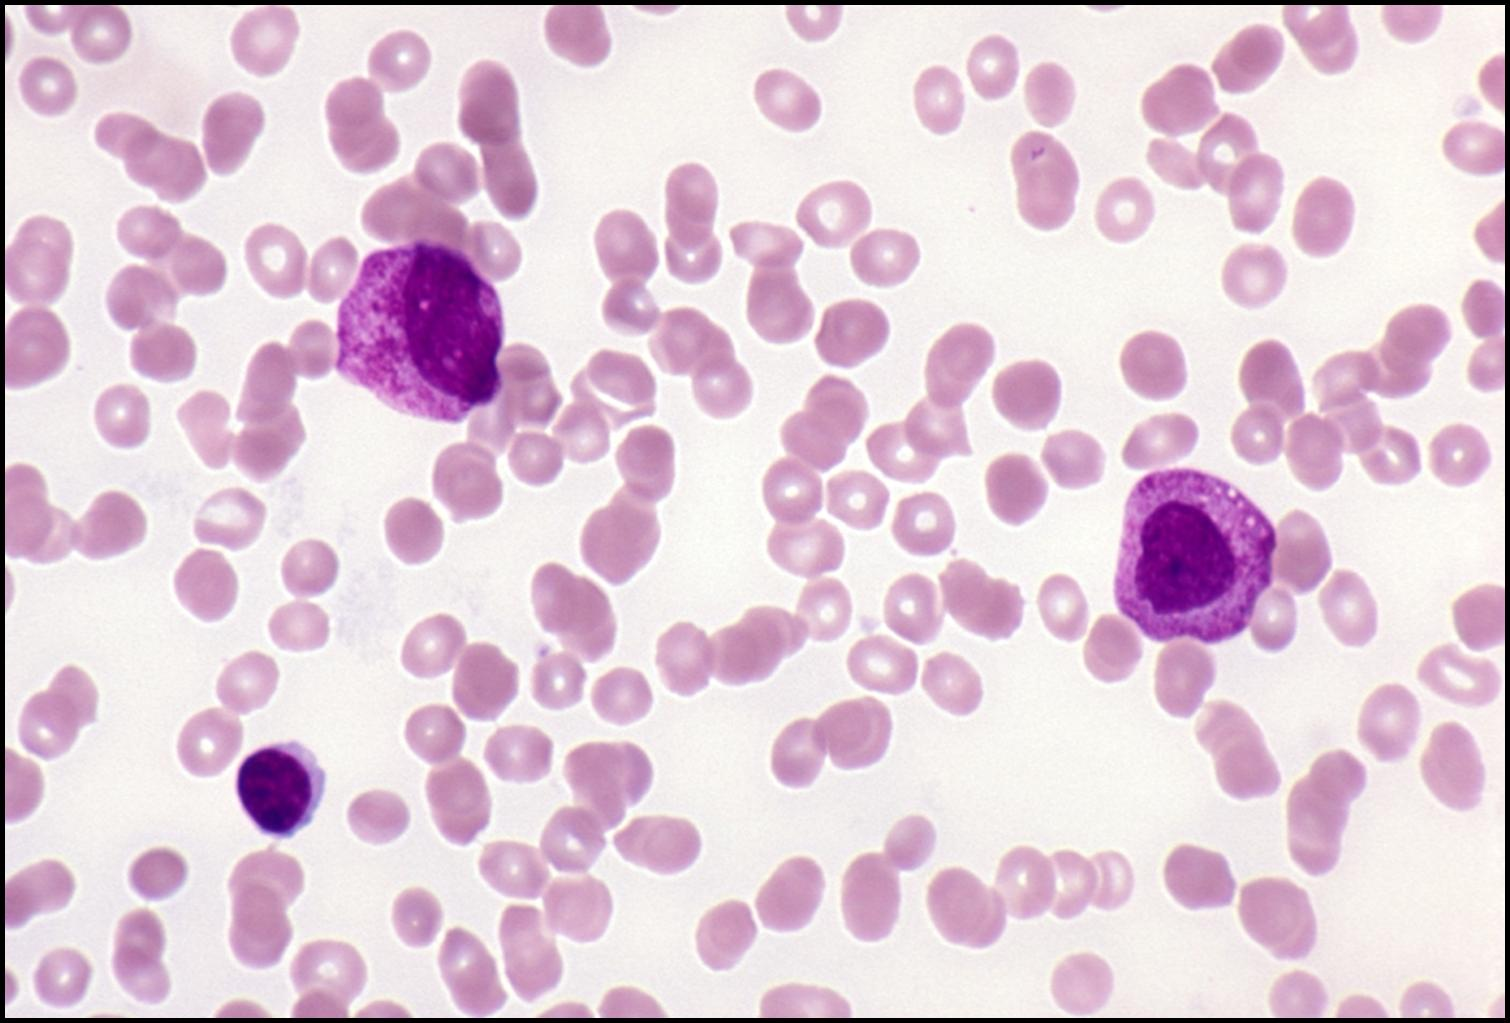 Acute lymphoblastic leukemia effect on the developmental process